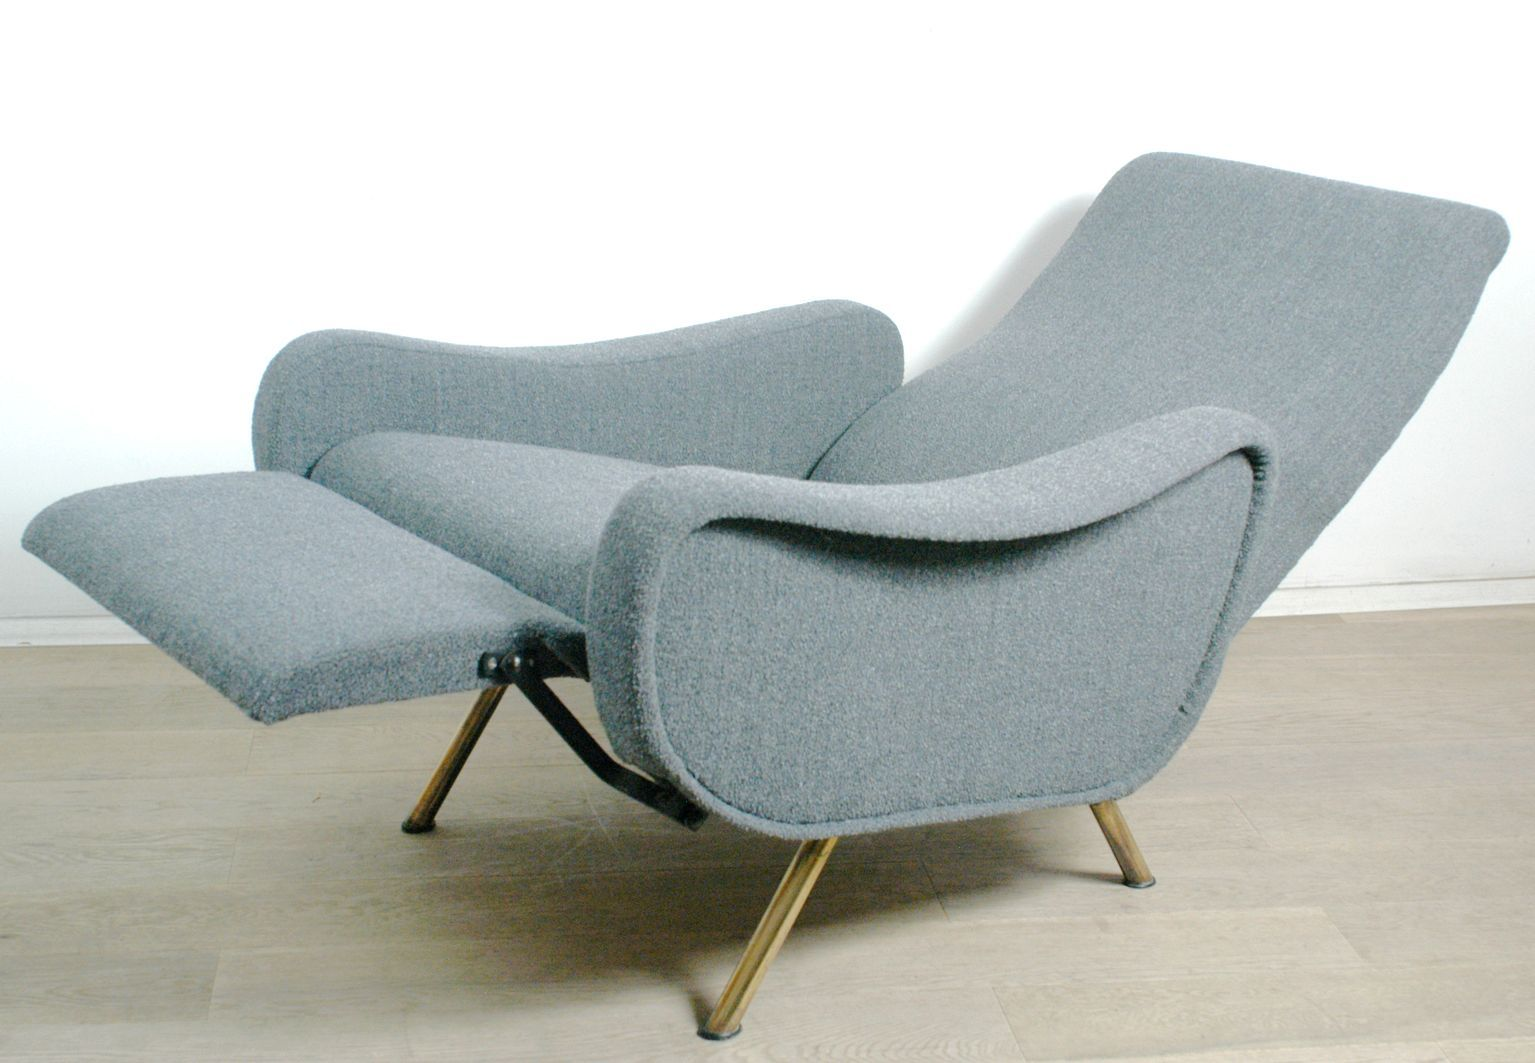 Lady Chair By Marco Zanuso For Artflex 1950s For Sale At Pamono In 2020 Modern Recliner Chairs Ladies Chair Contemporary Recliners